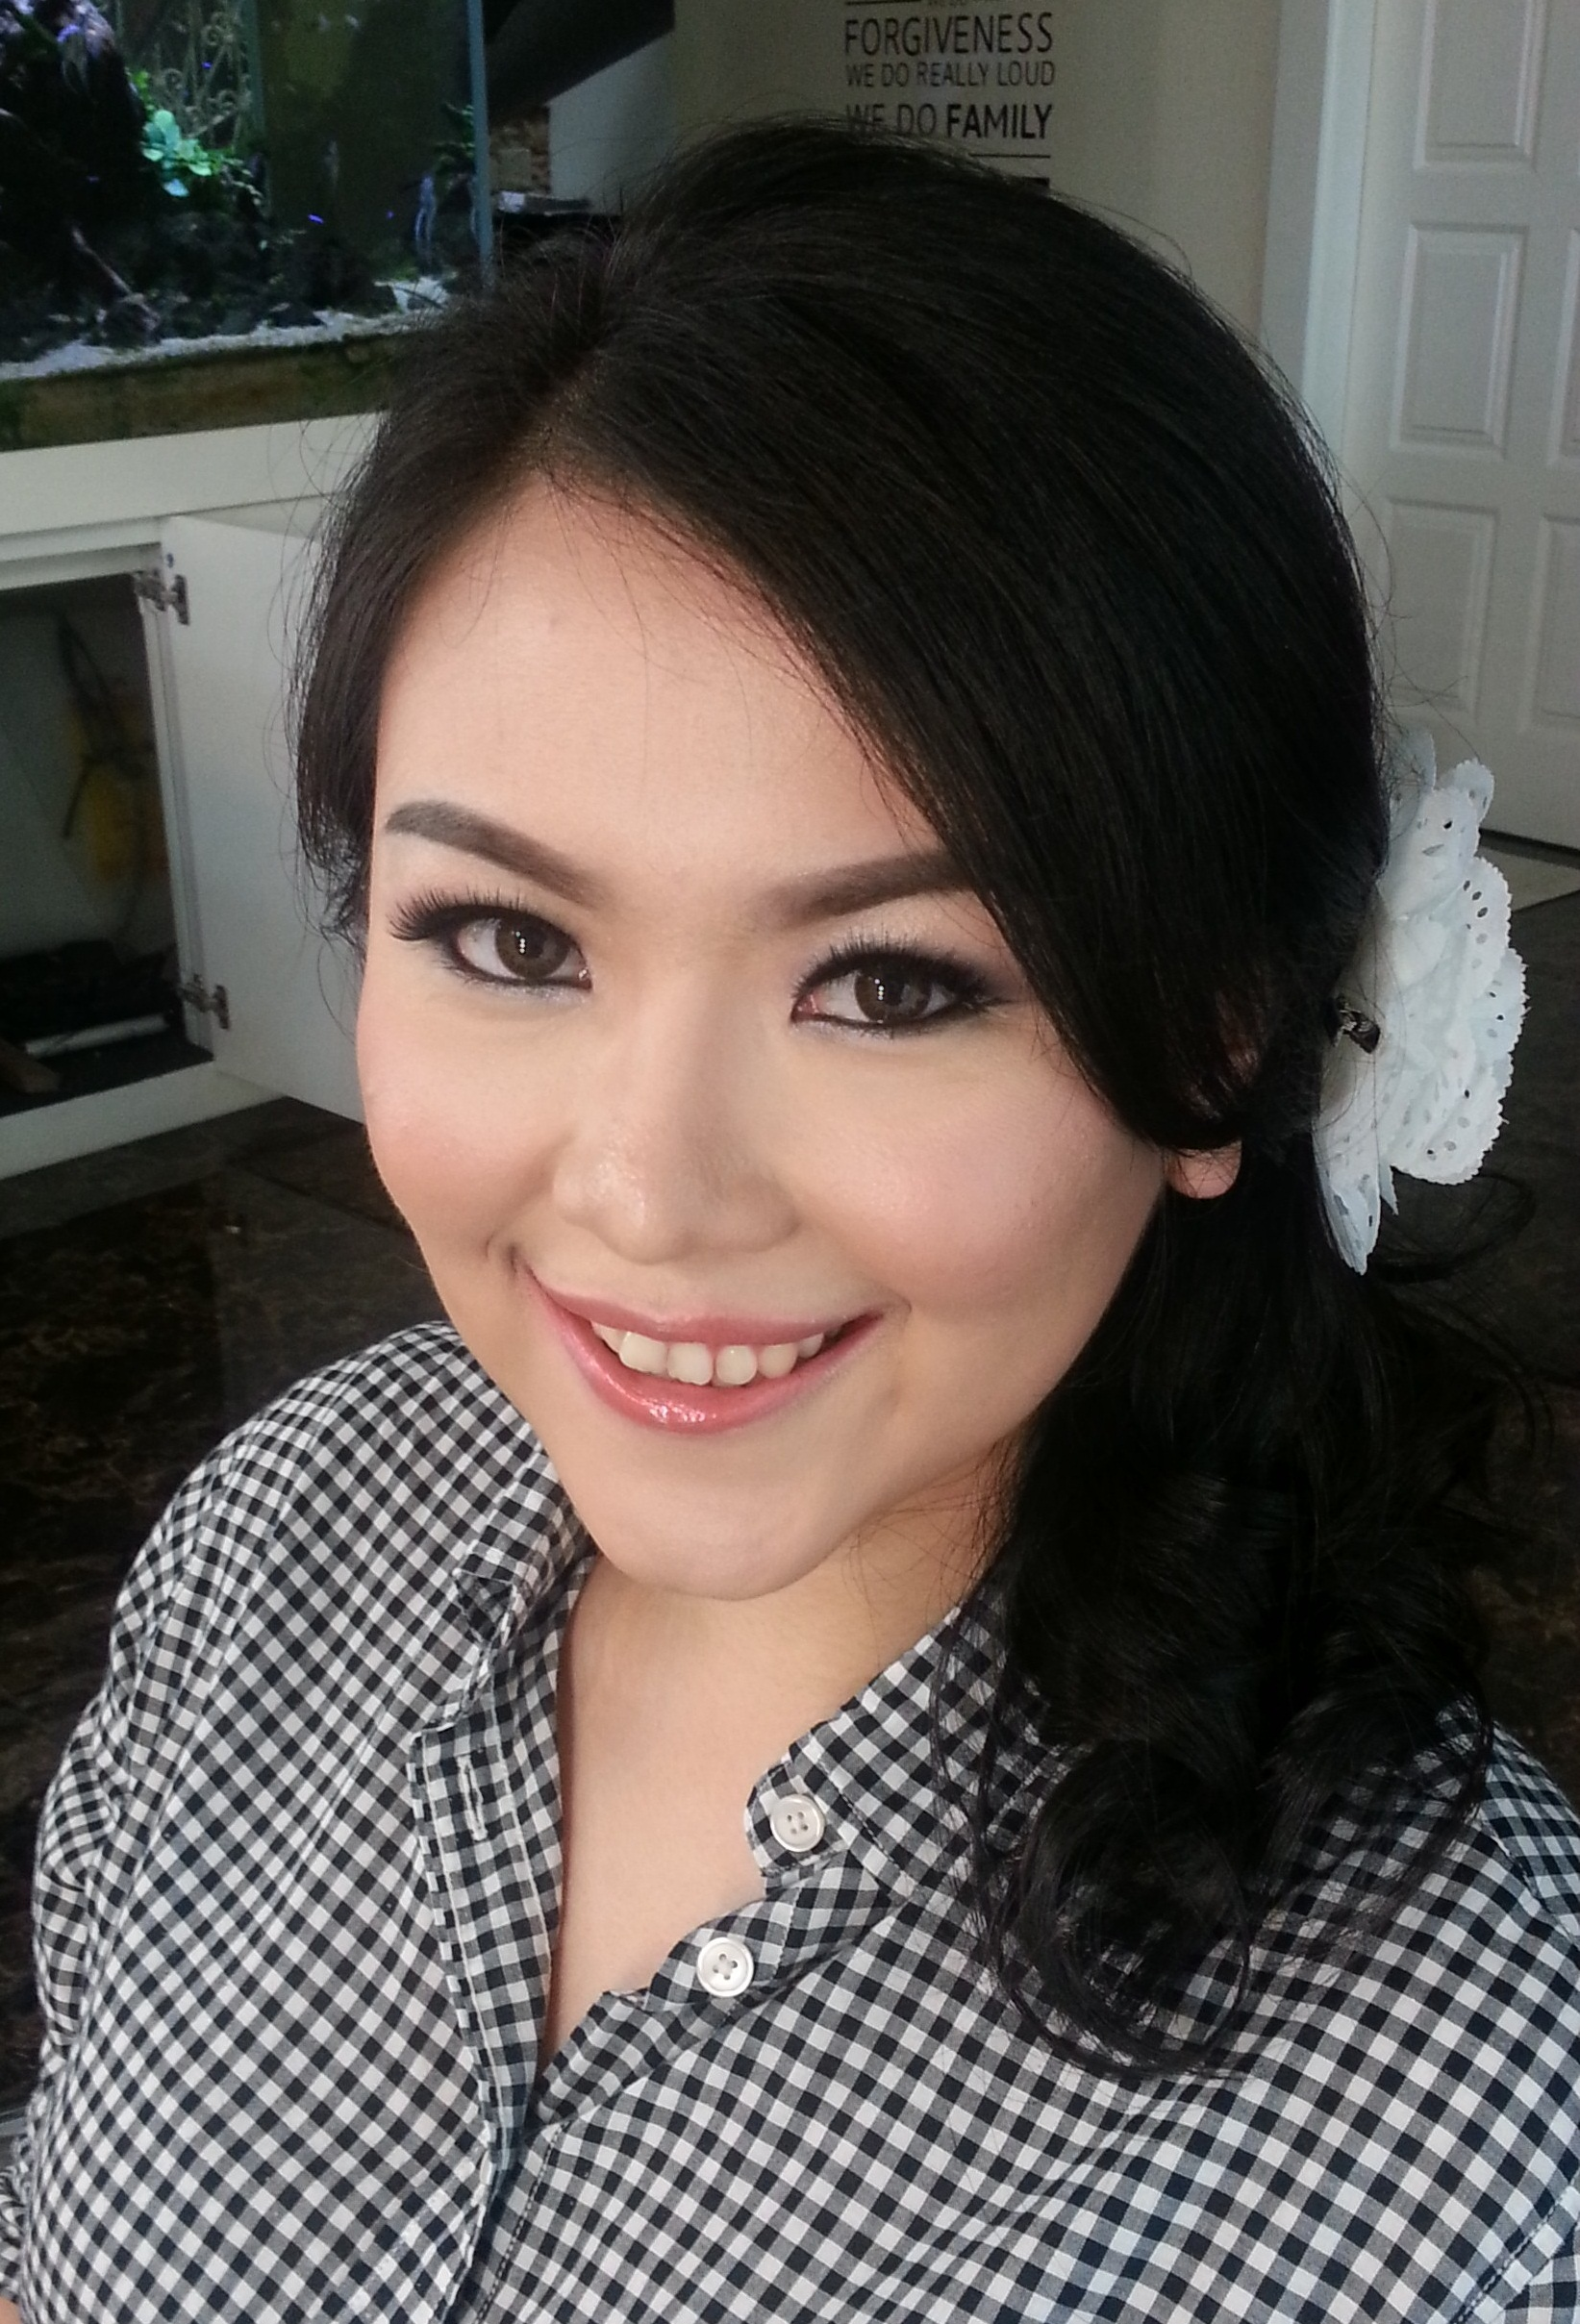 The Beauty Of A Heart Shaped Face Esther Fong